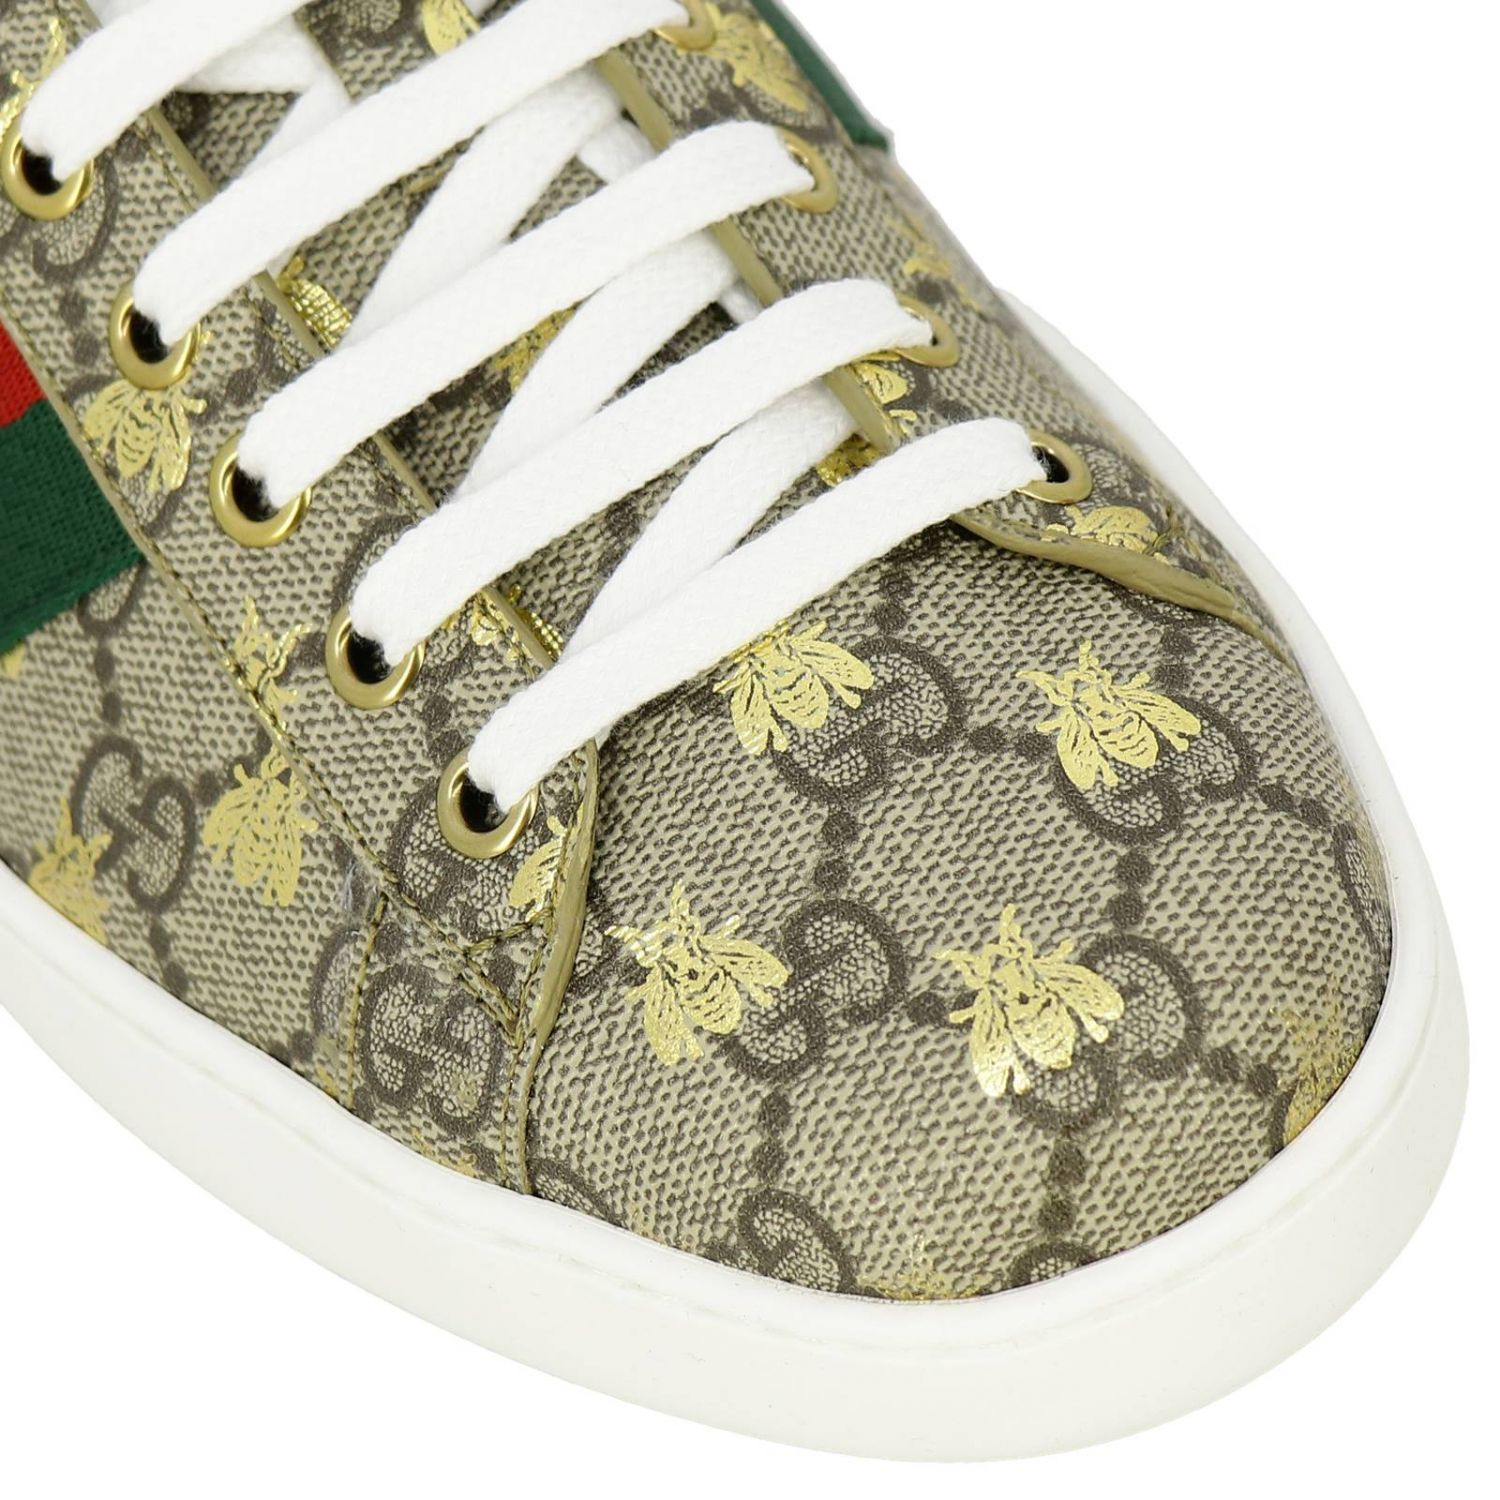 Sneakers New Ace in pelle GG Supreme Gucci con fasce Web e stampa Ape all over beige 3